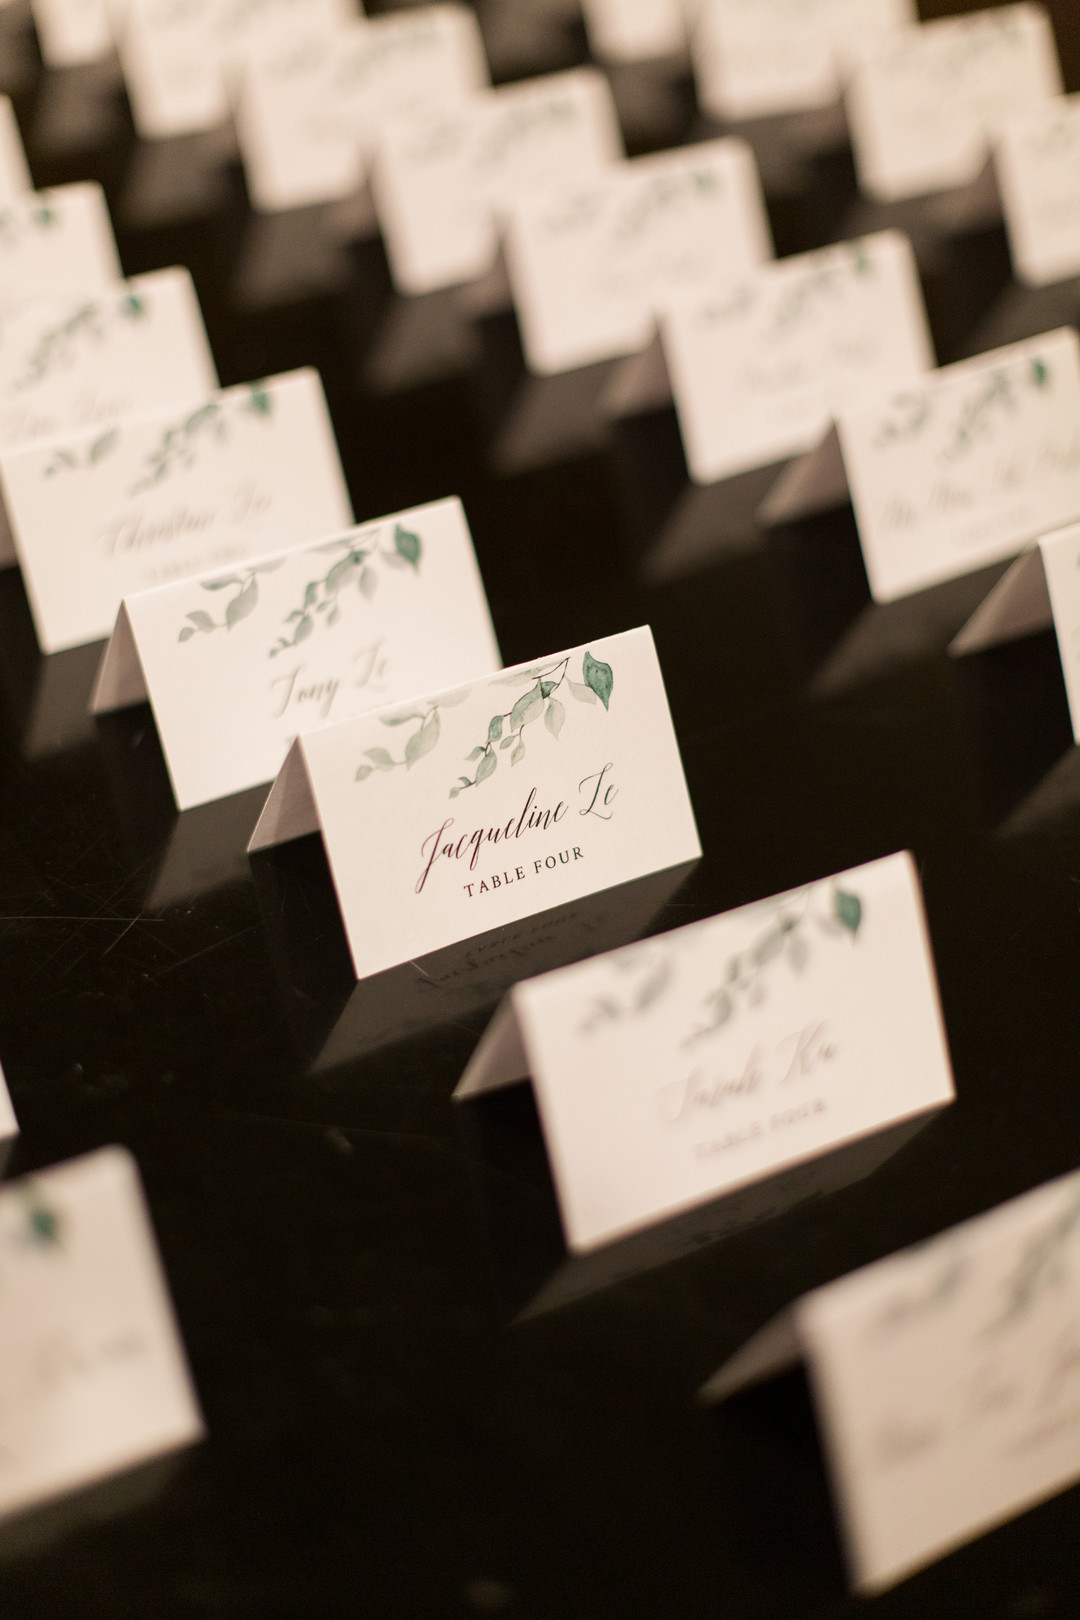 Wedding escort cards: Spring wedding inspiration captured by Nicole Morisco Photography. Find more spring wedding ideas at CHItheeWED.com!